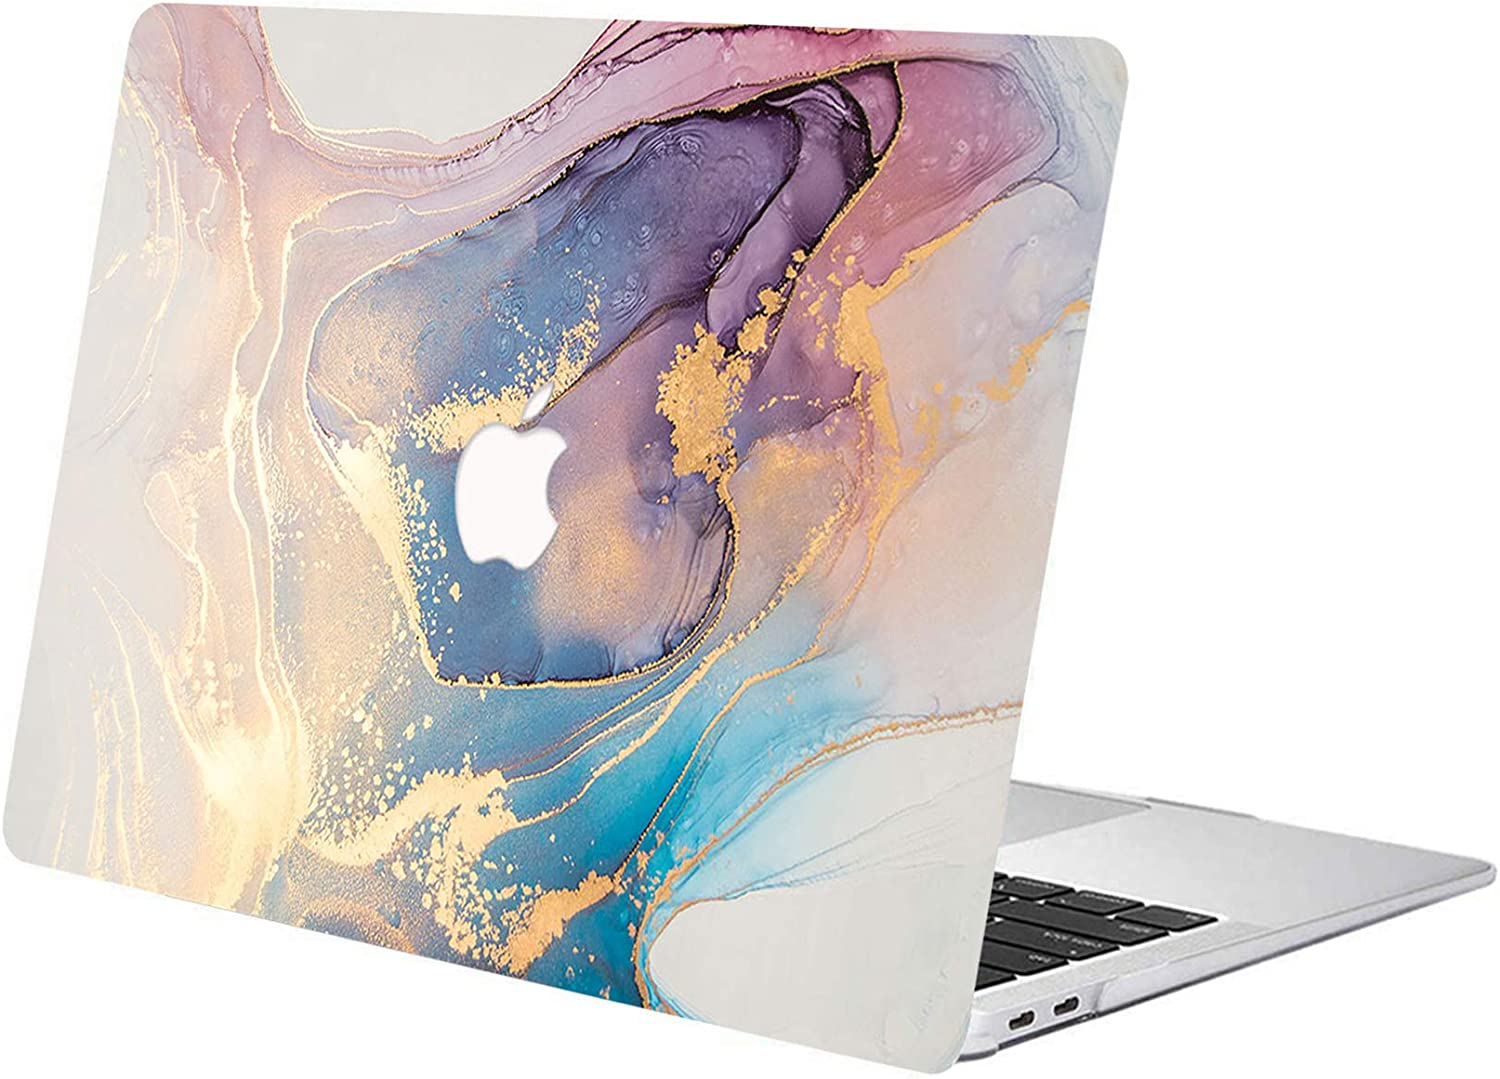 ACJYX Compatible with MacBook Air 13 inch Case Model A1466 & A1369 Older Version 2017 2016 2015 2014 2013 2012 2011 2010, Print Pattern Coated Plastic Protective Hard Shell Case, Colored Marble